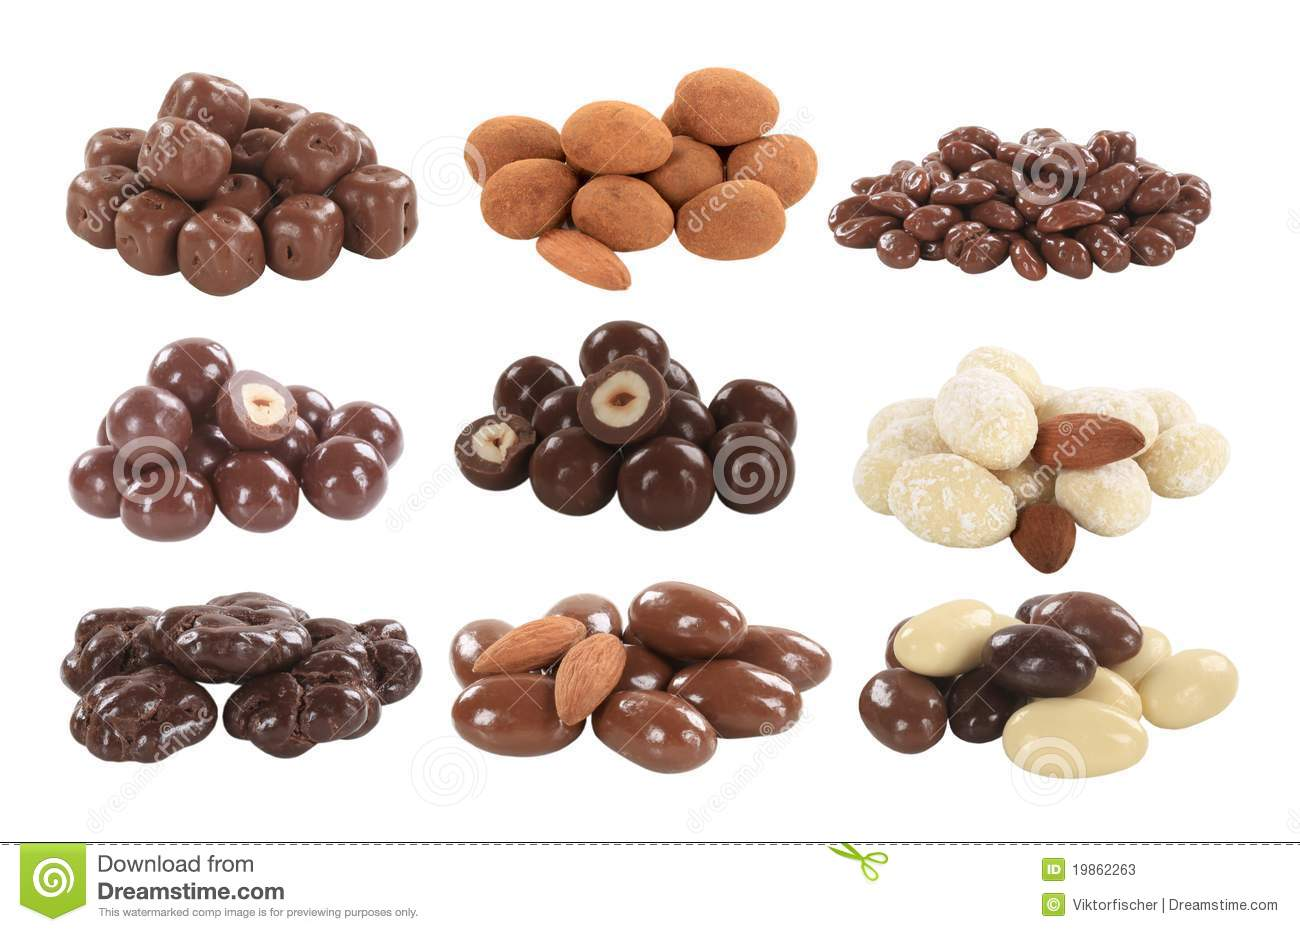 Chocolate Covered Nuts And Fruit Stock Photos - Image: 19862263